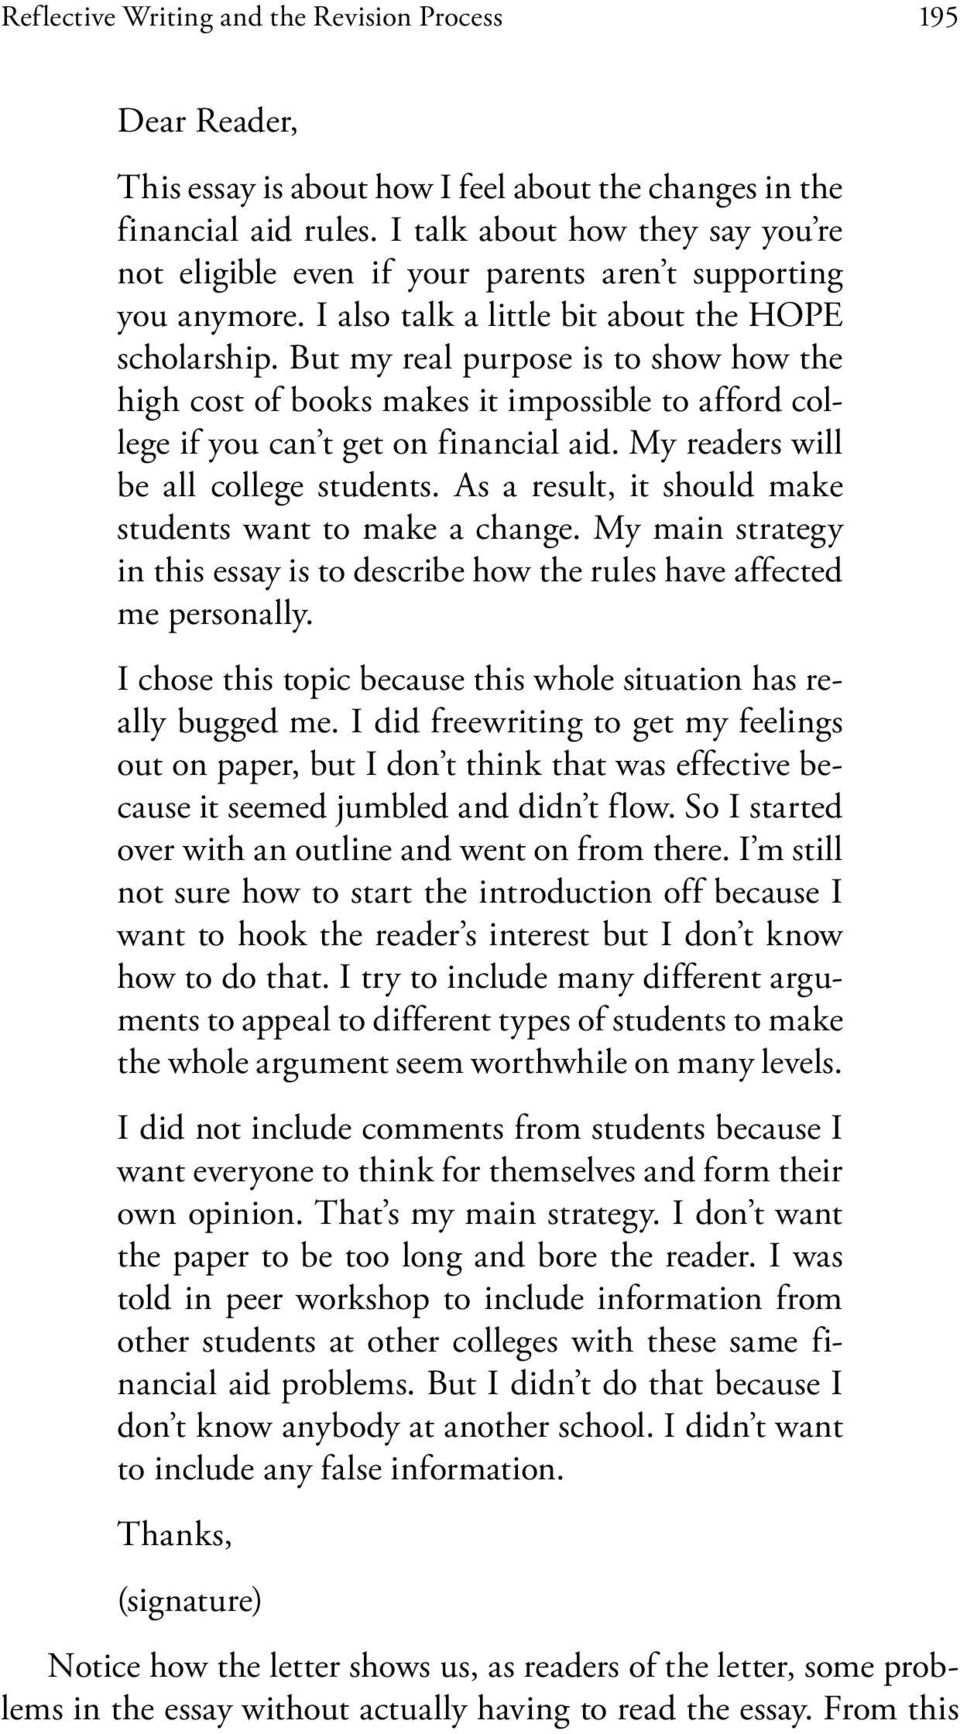 But my real purpose is to show how the high cost of books makes it impossible to afford college if you can t get on financial aid. My readers will be all college students.